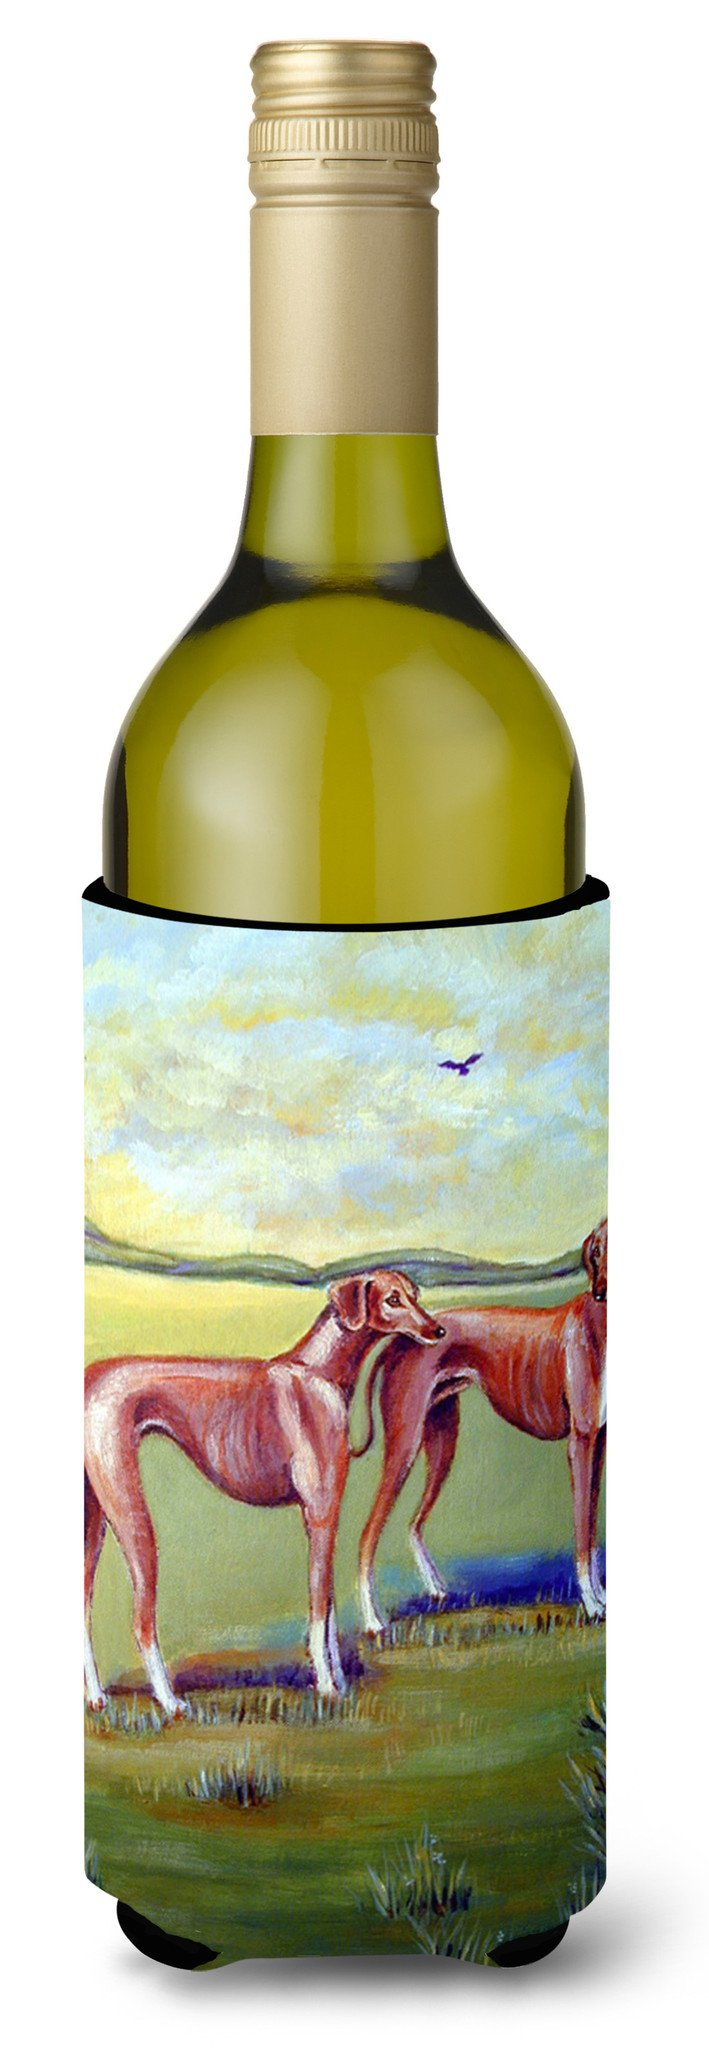 Azawakh Hound Wine Bottle Beverage Insulator Beverage Insulator Hugger by Caroline's Treasures